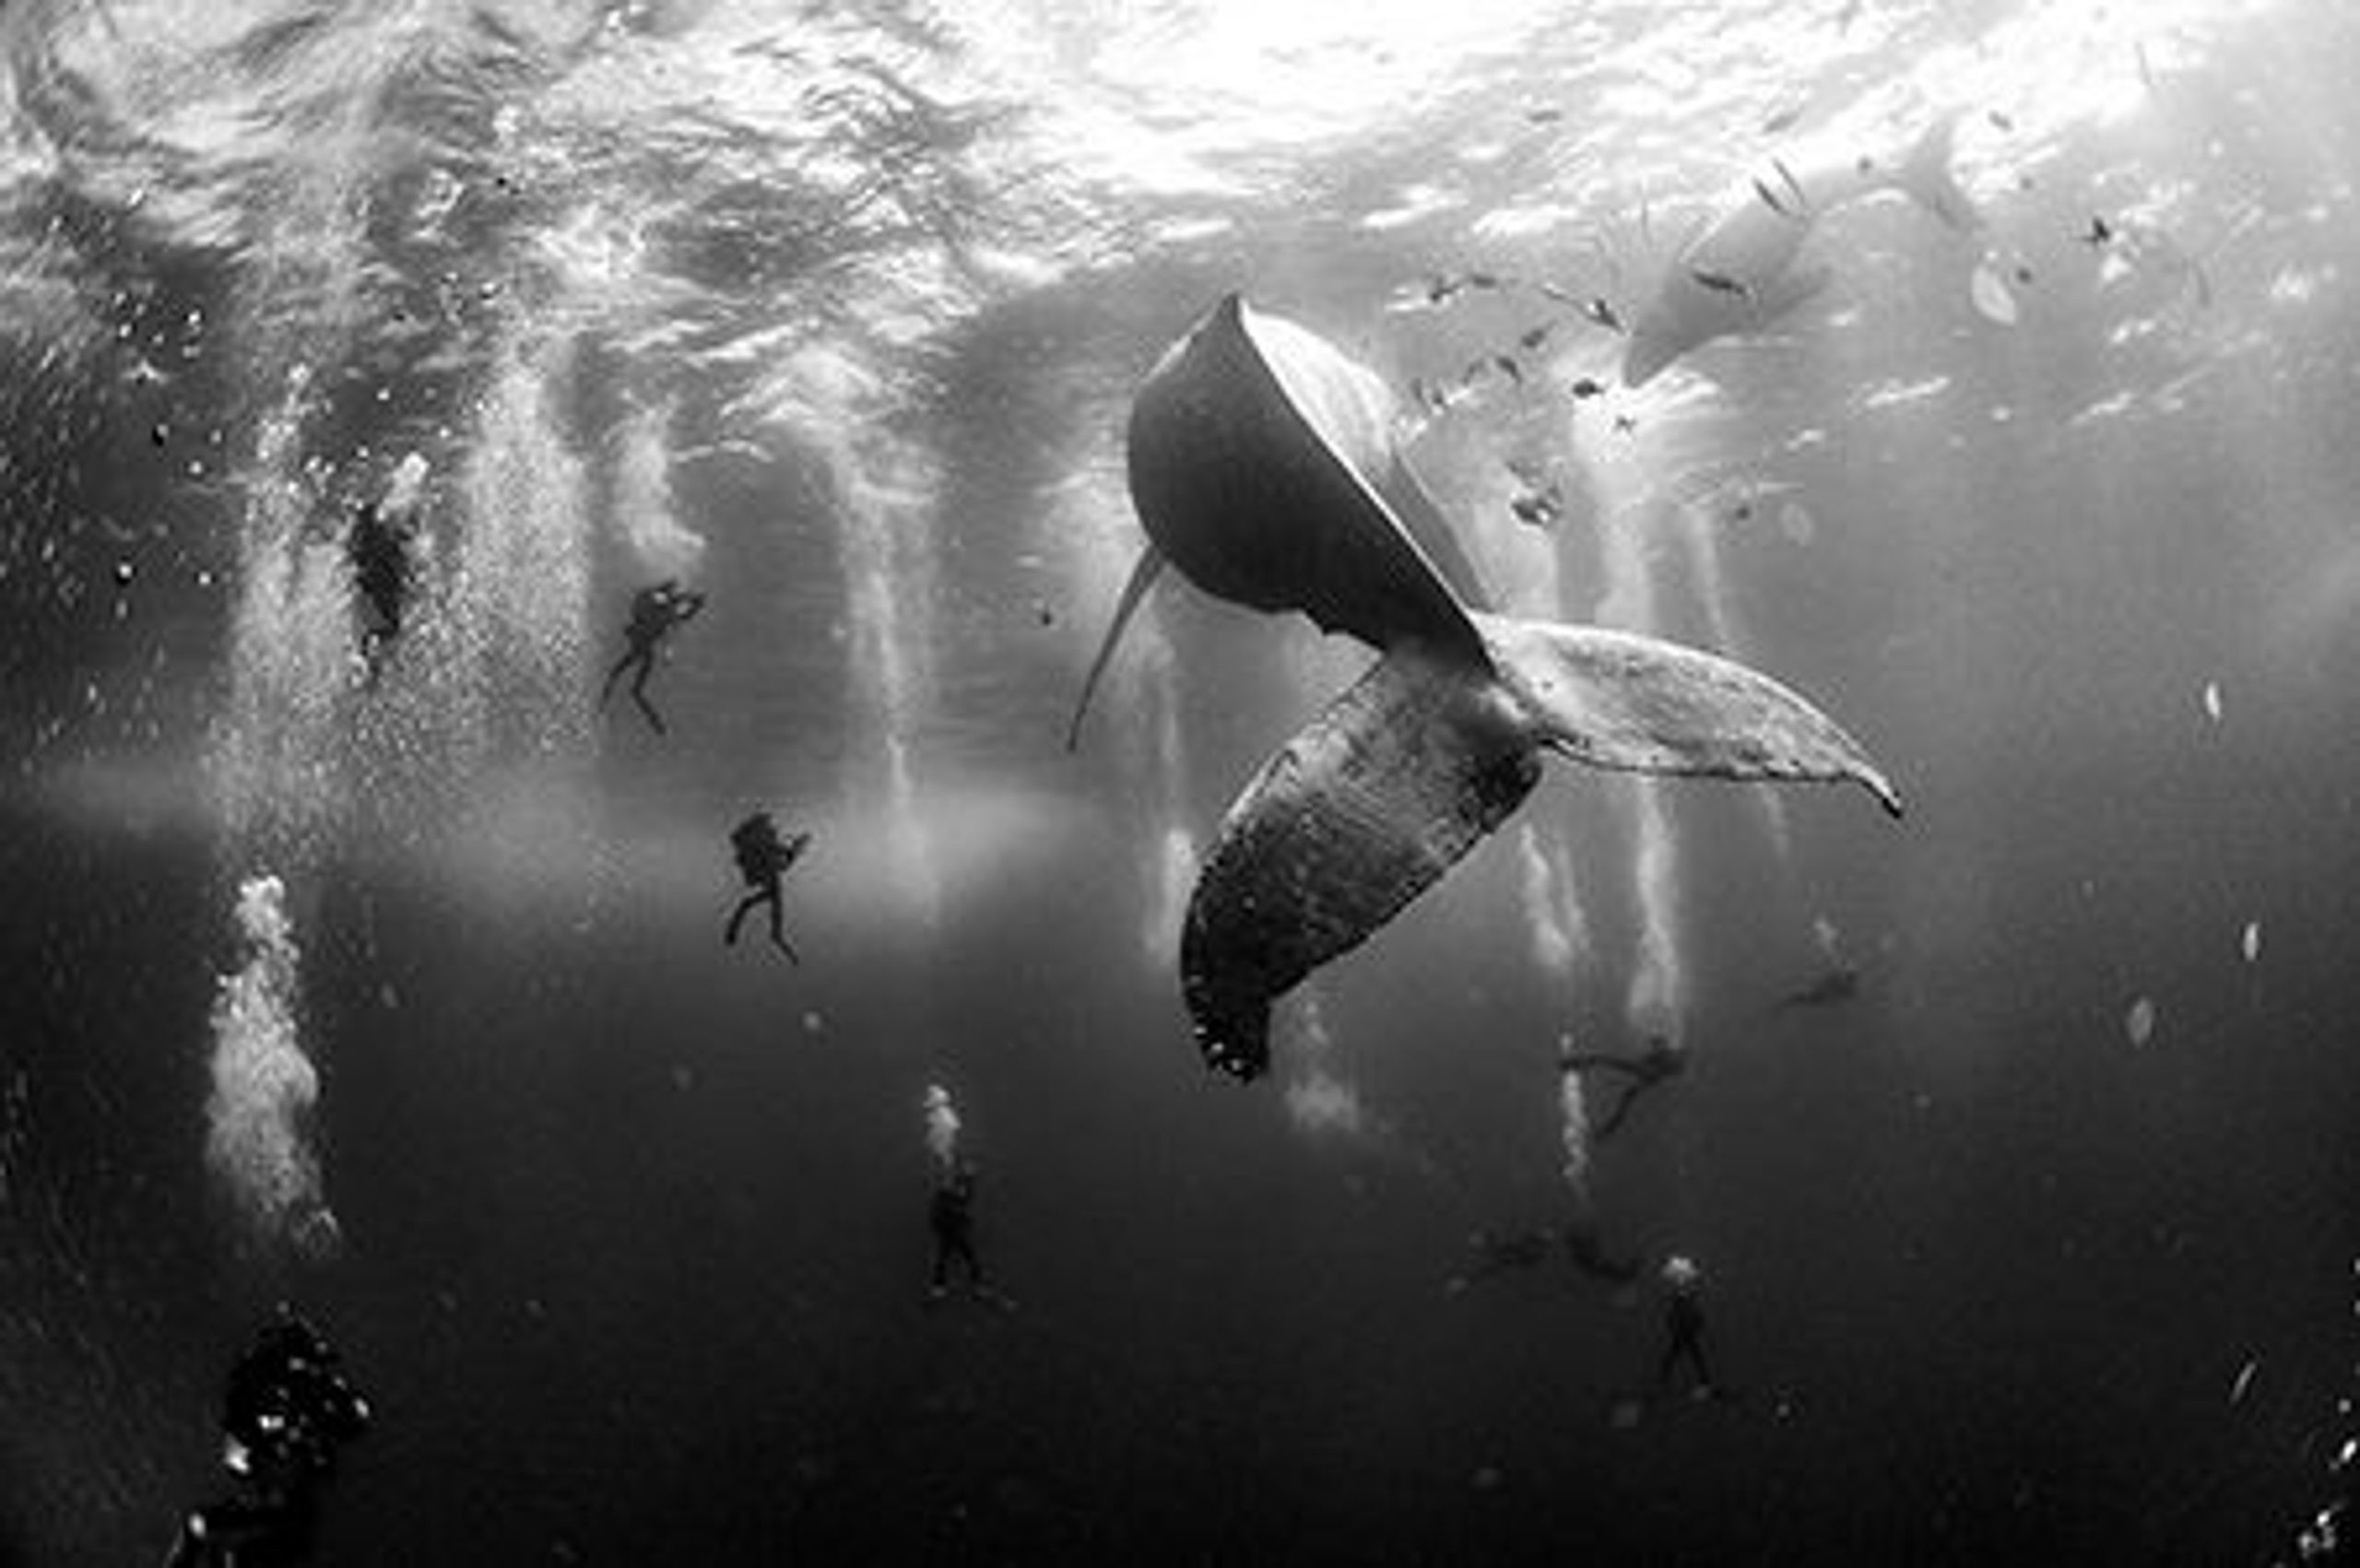 Whales in the ocean, surrounded by scuba divers.